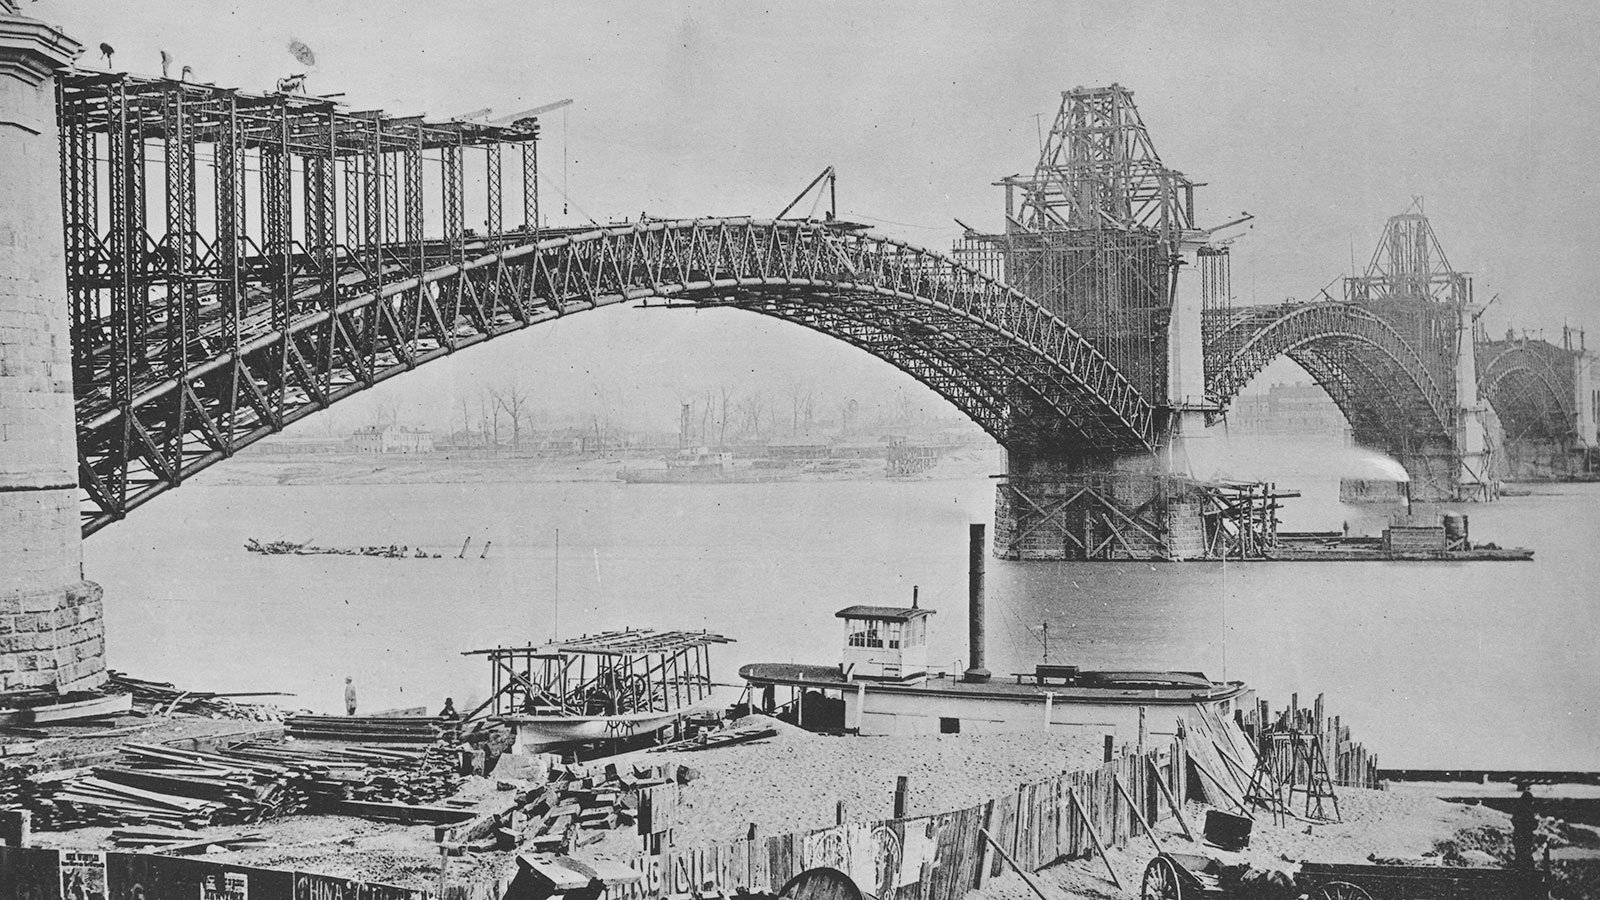 Erection of the St. Louis Bridge